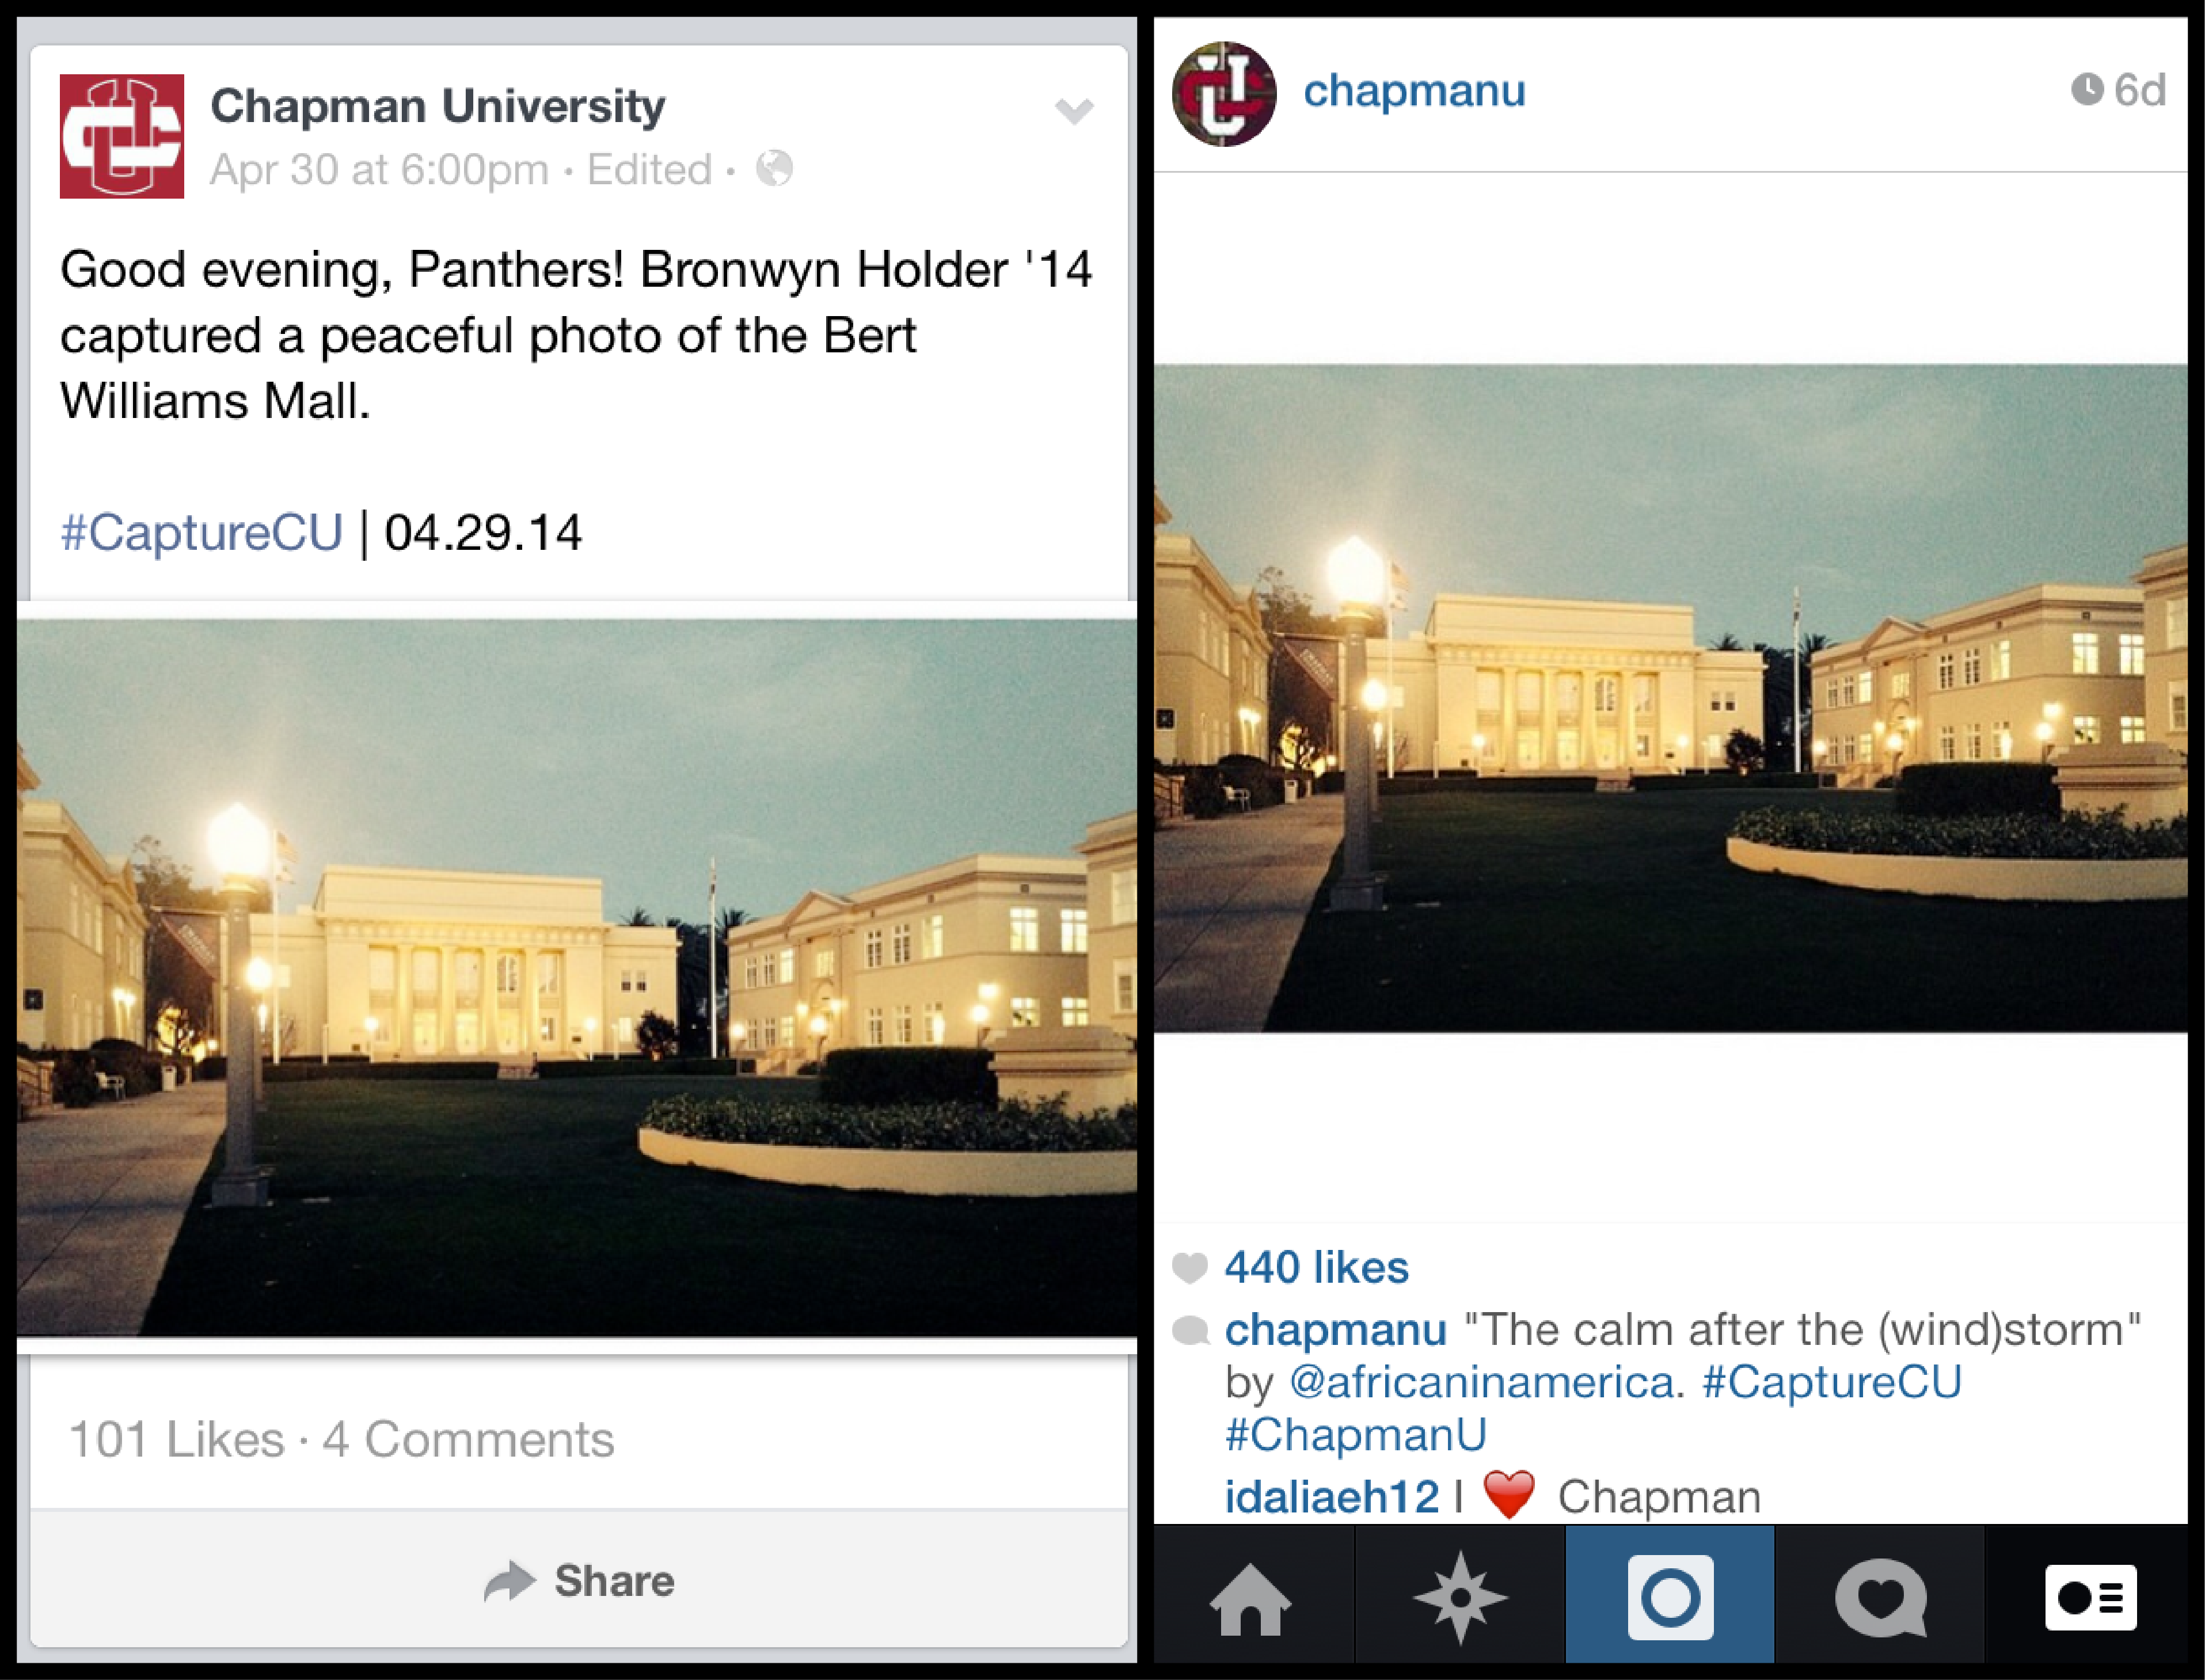 Twitter vs. Facebook vs. Instagram: who uses which and why dissertation example